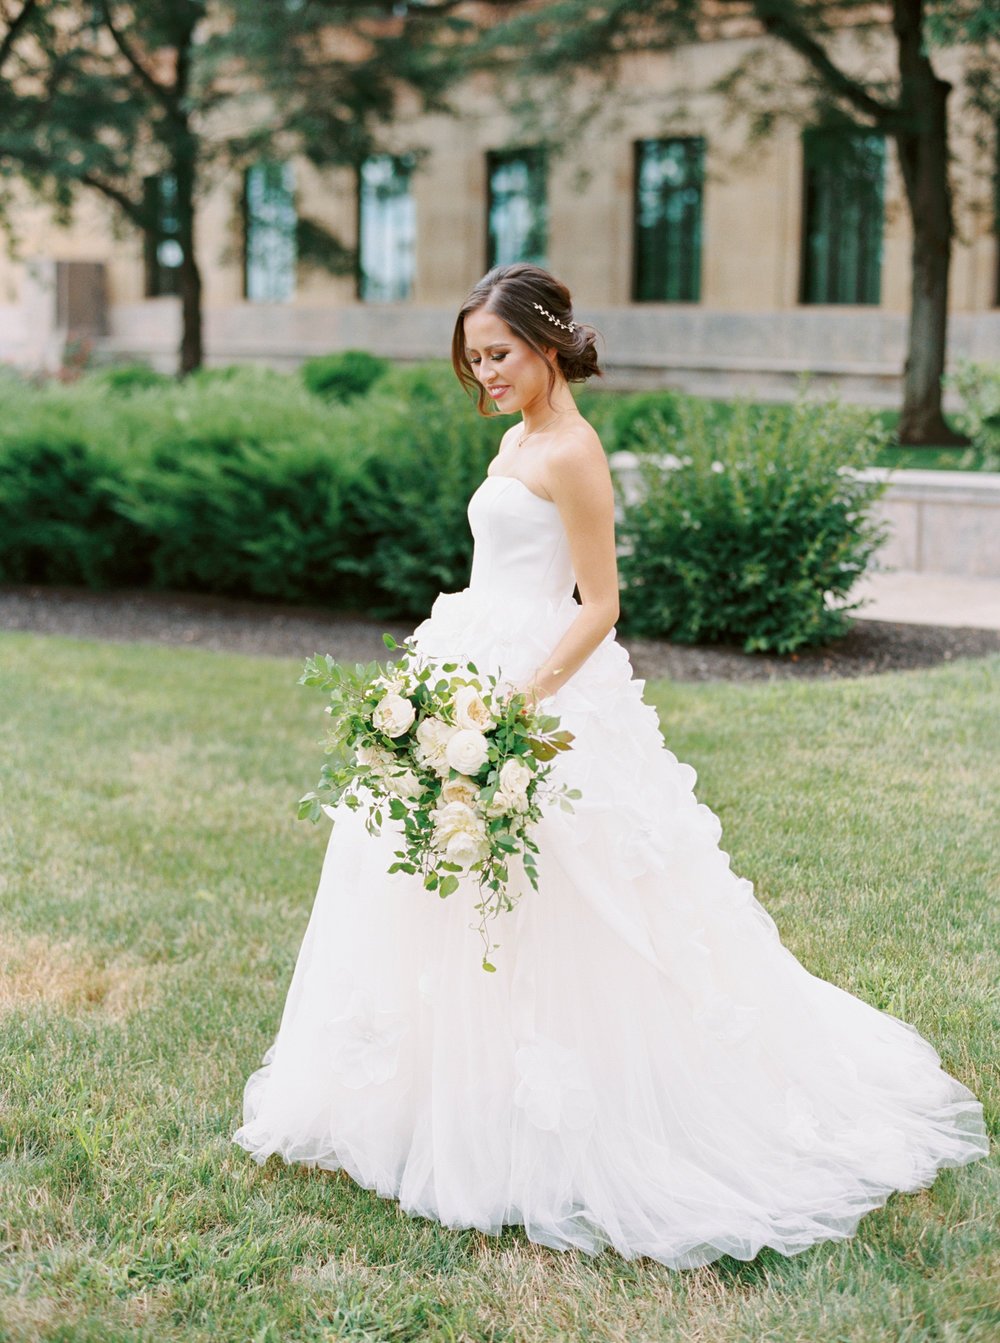 garden-white-bouquet-ballgown-dress.jpg